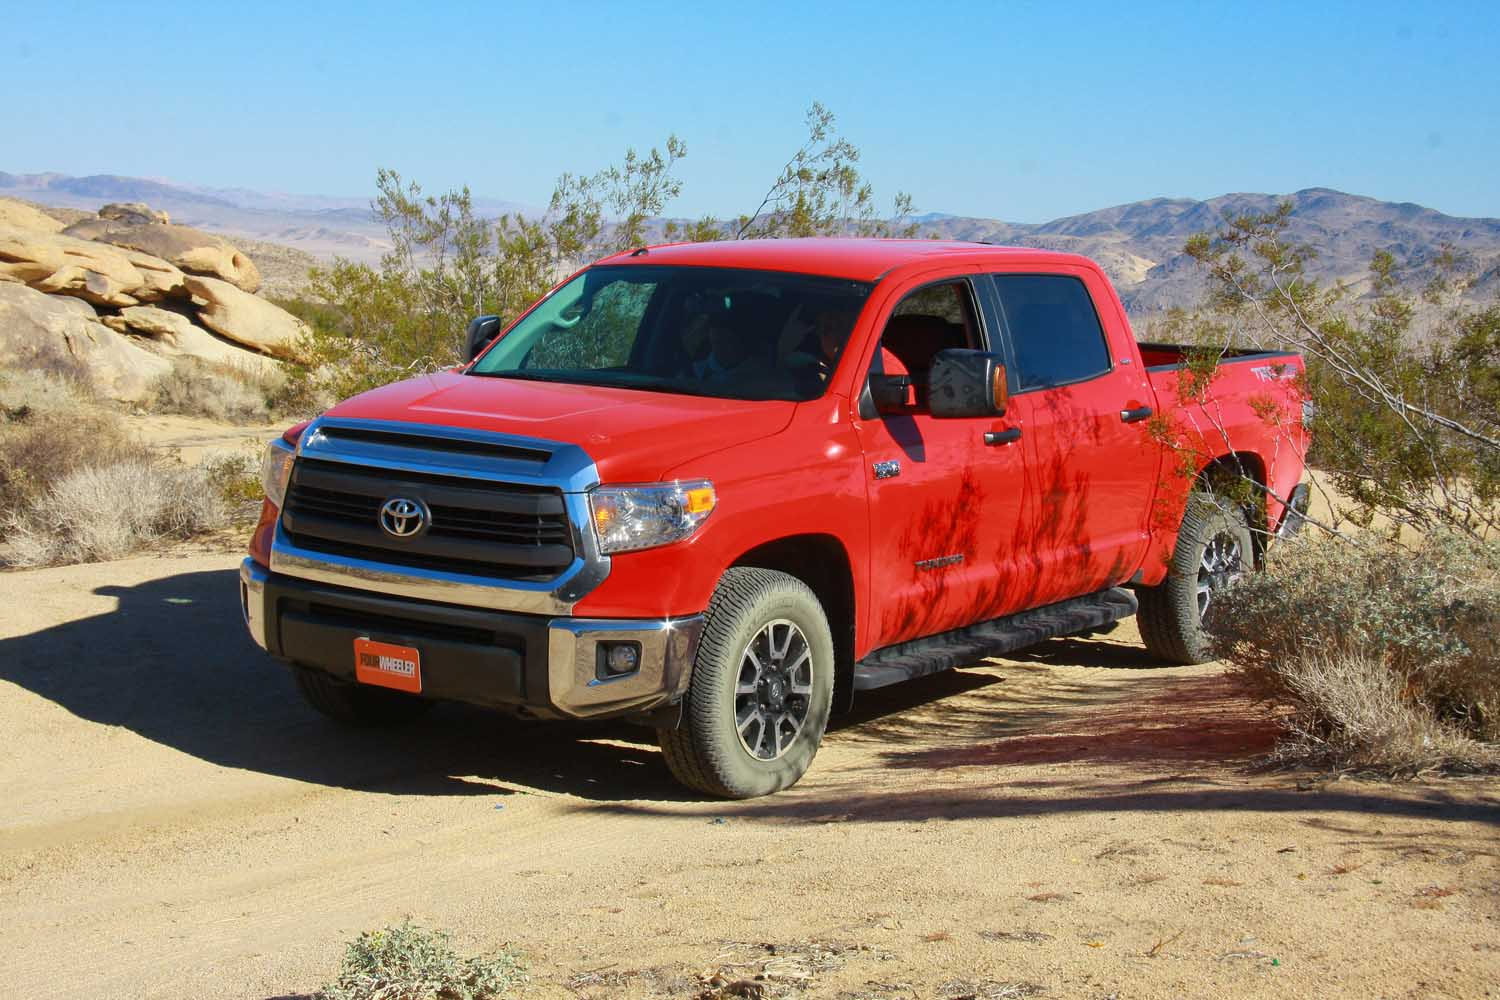 2014 Toyota Tundra front three quarter off road